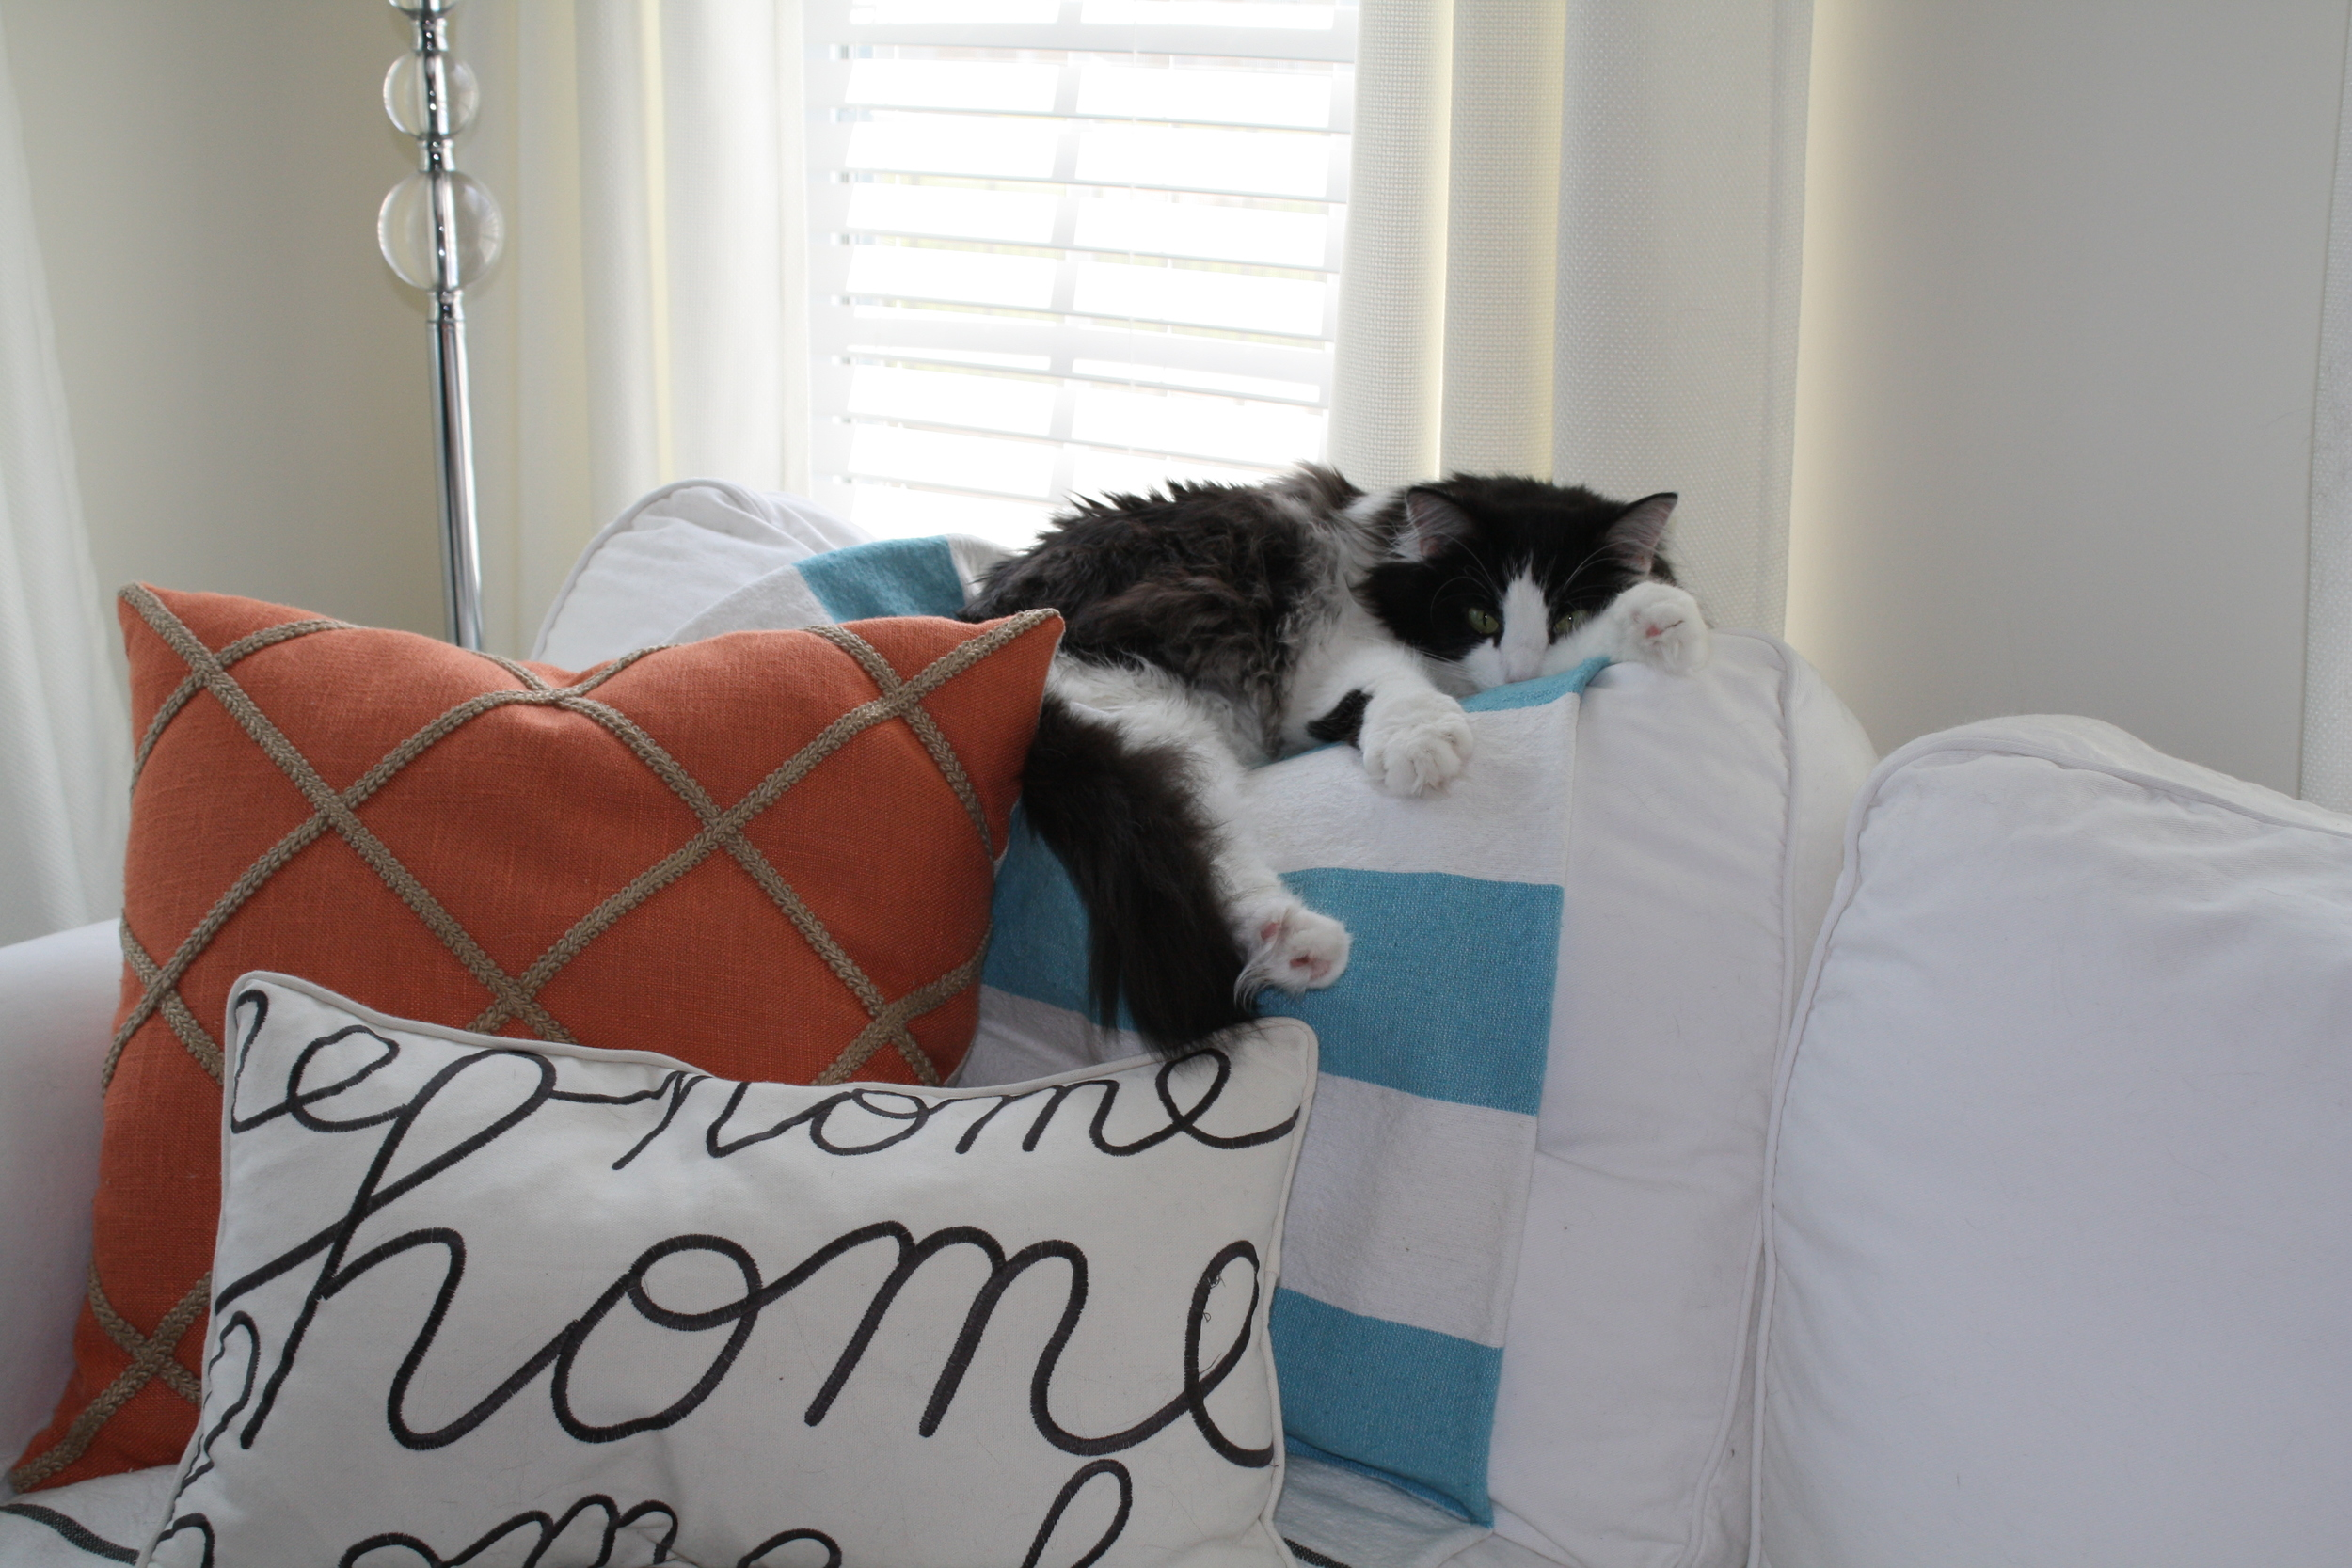 This is my office assistant Bandit, in his afternoon spot. He's the friendliest of our cats (we have 3!) so that's why he's in a lot of these pics. I love the way his leg is hanging off the couch.